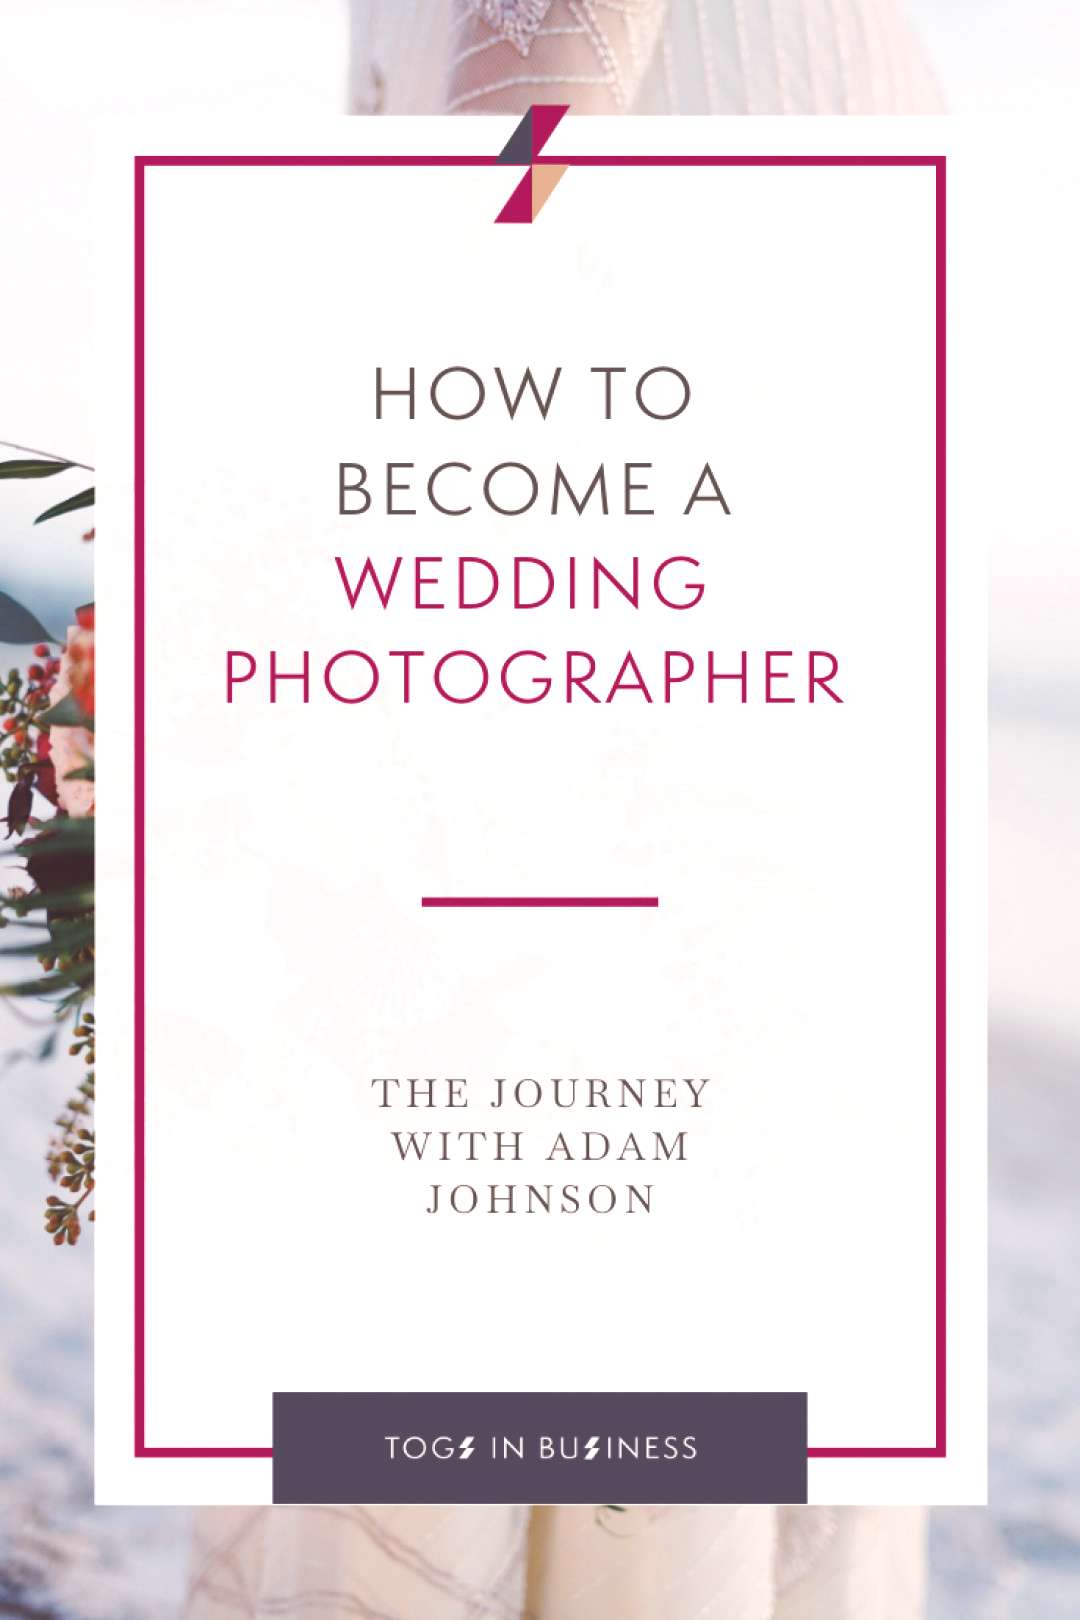 How to become a Wedding Photographer - The Journey with Adam Johnson How to become a wedding photog